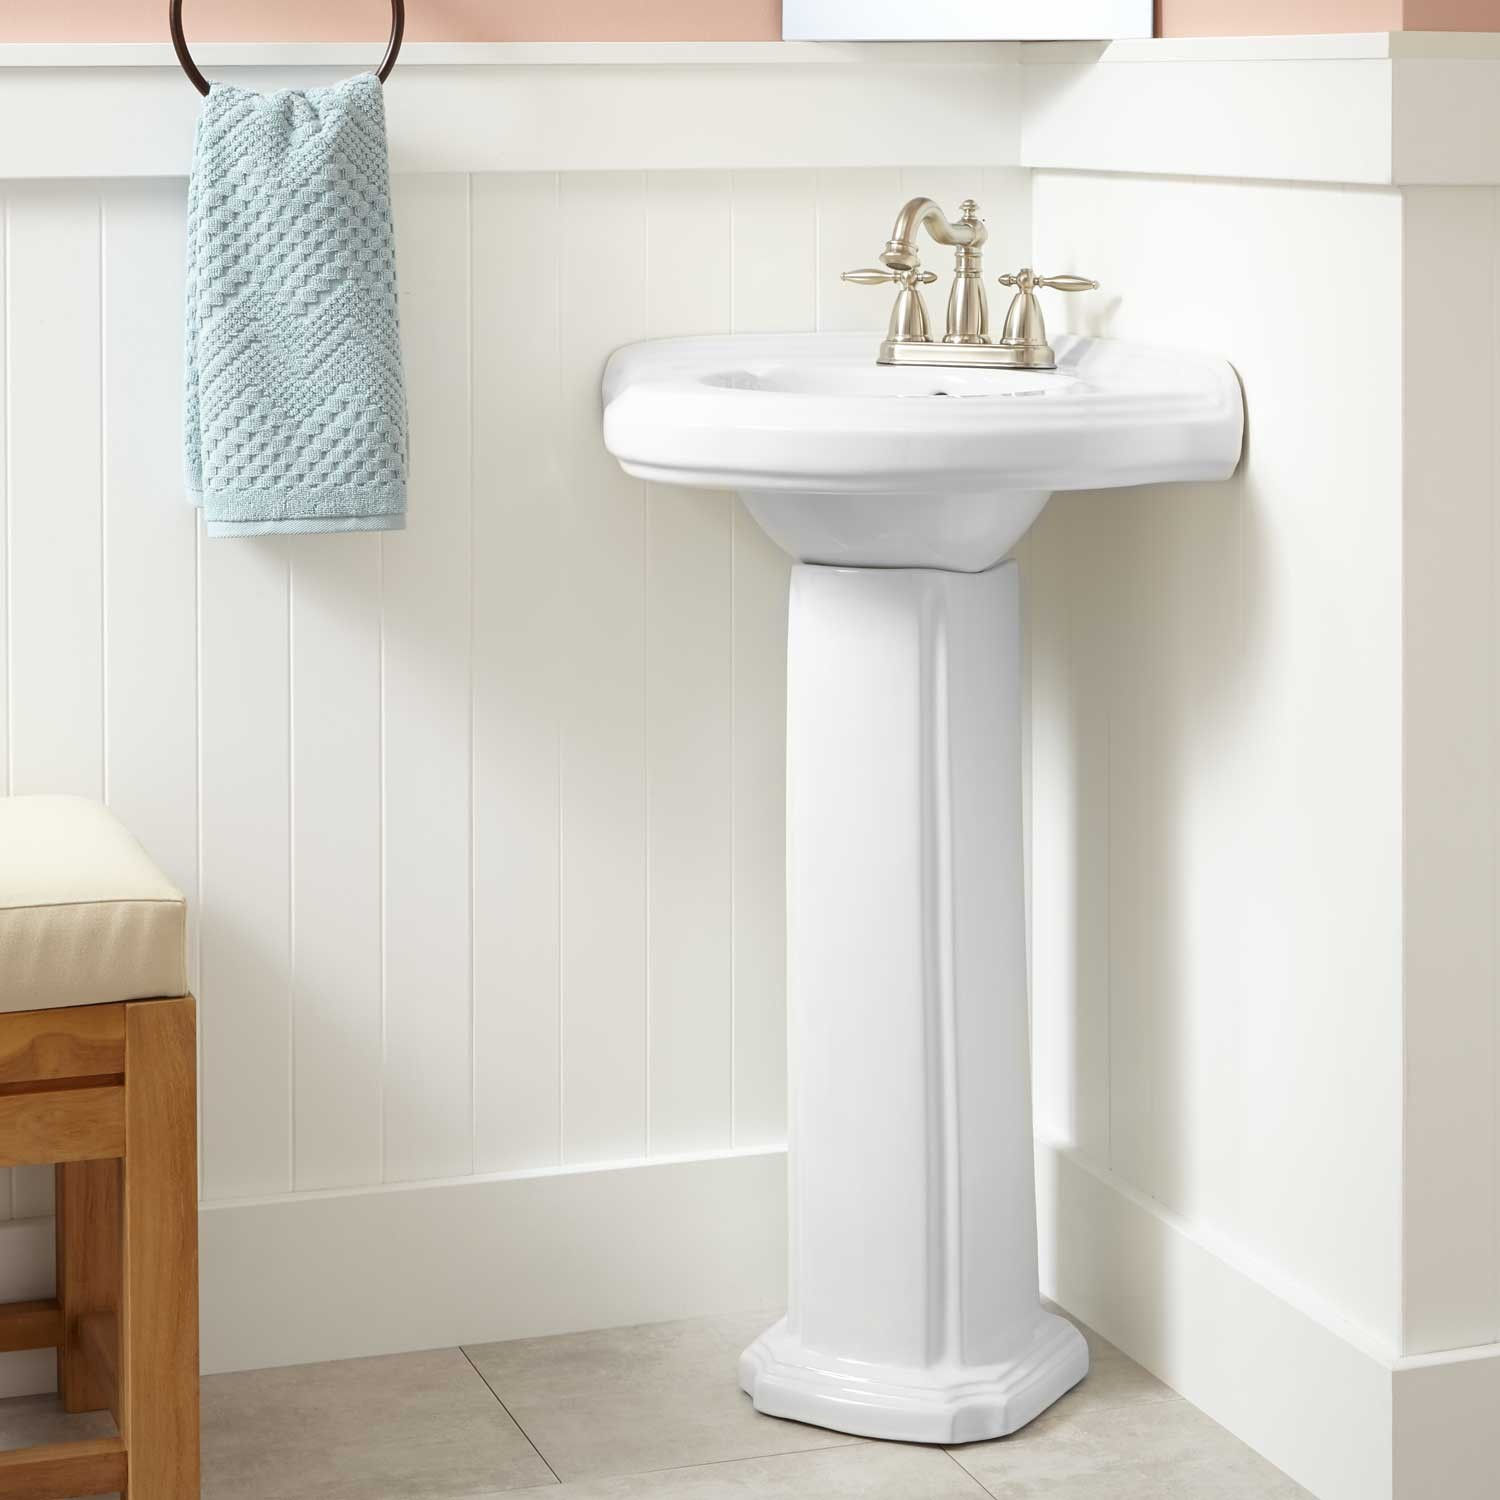 Small Pedestal Sink Storage in the Cozy Bathroom with Wooden Bench and Towel Hanger